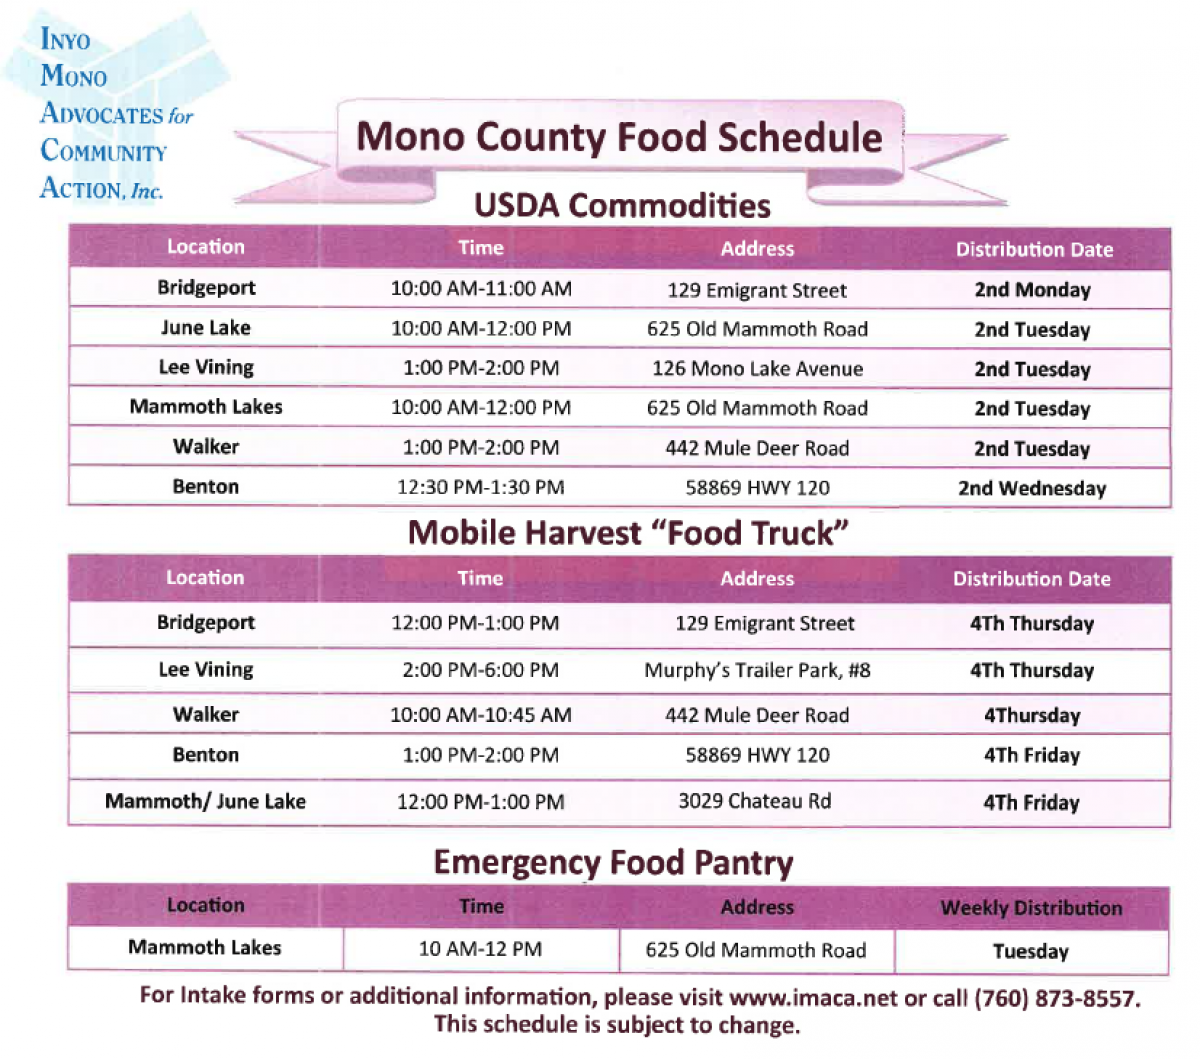 IMACA Food Distribution Calendar